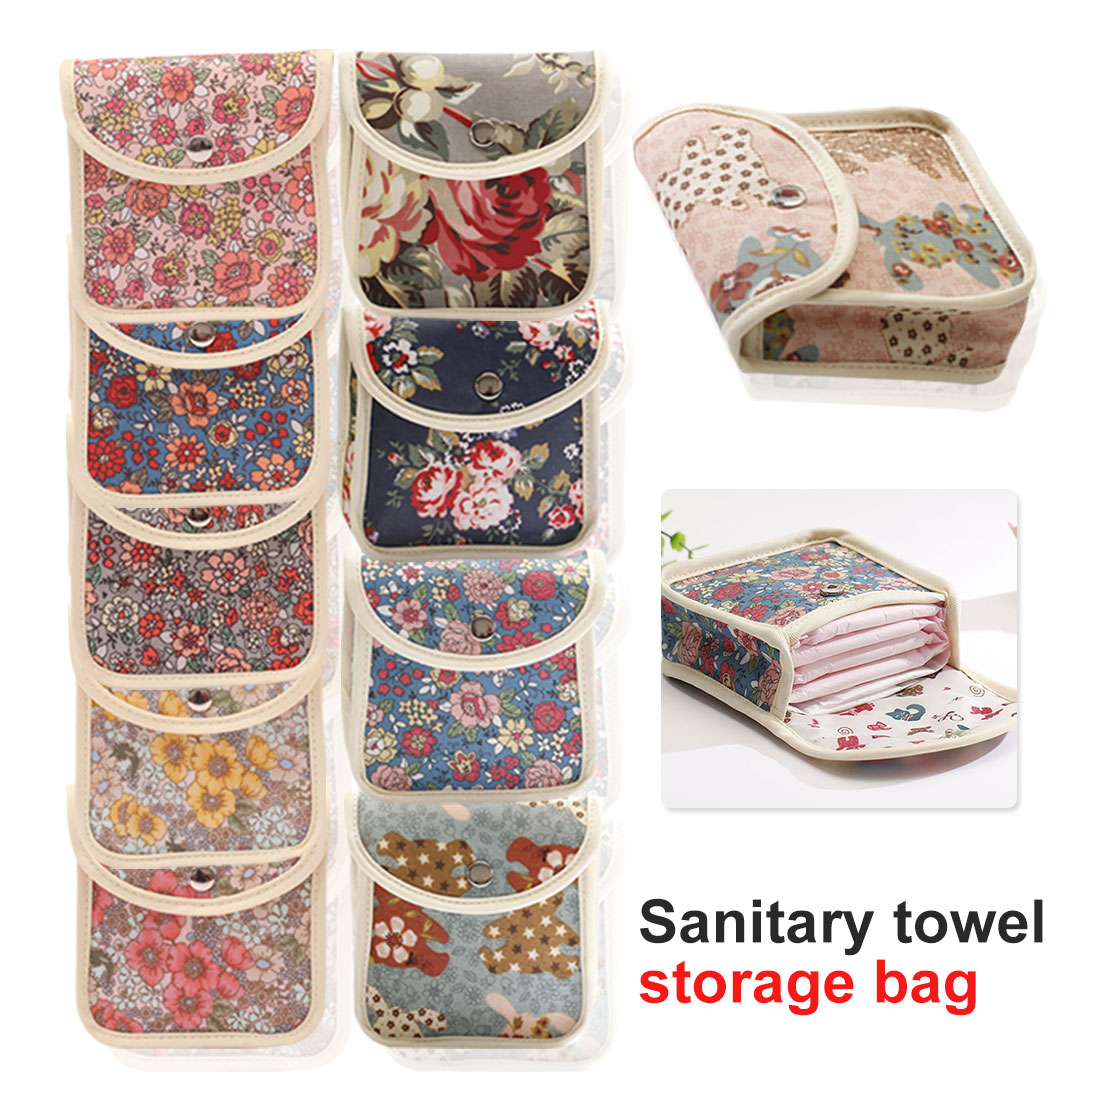 Napkin Also Can Be Coin Makeup Bag Makeup Tool New Sanitary Pads Bags Wet Bag Reusable Bag For Mama Cloth Pads Menstrual